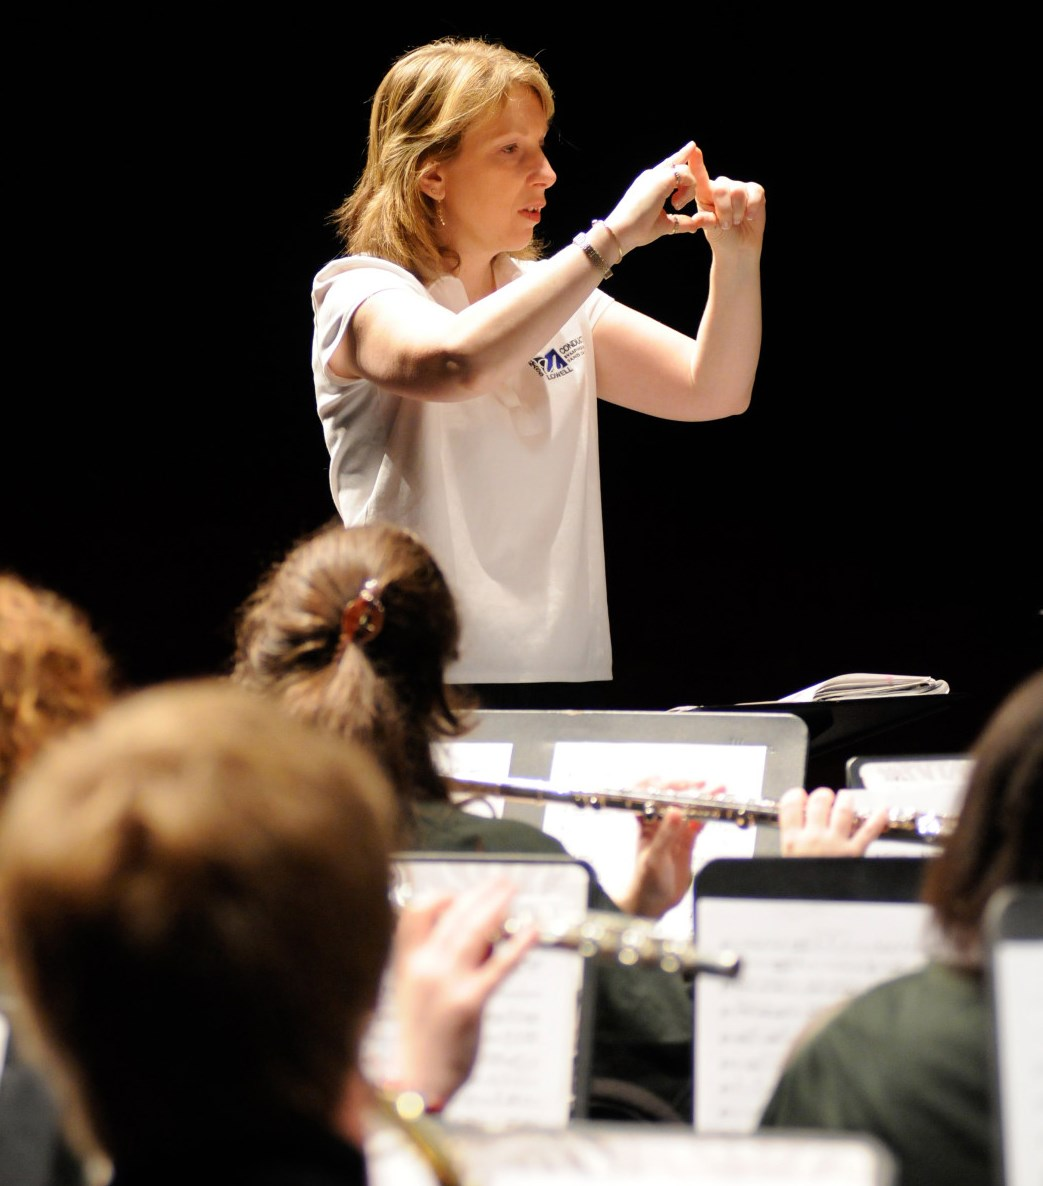 Conductor Deb Huber of the University of Massachusetts Lowell explains a musical phrase to her concert band ensemble.